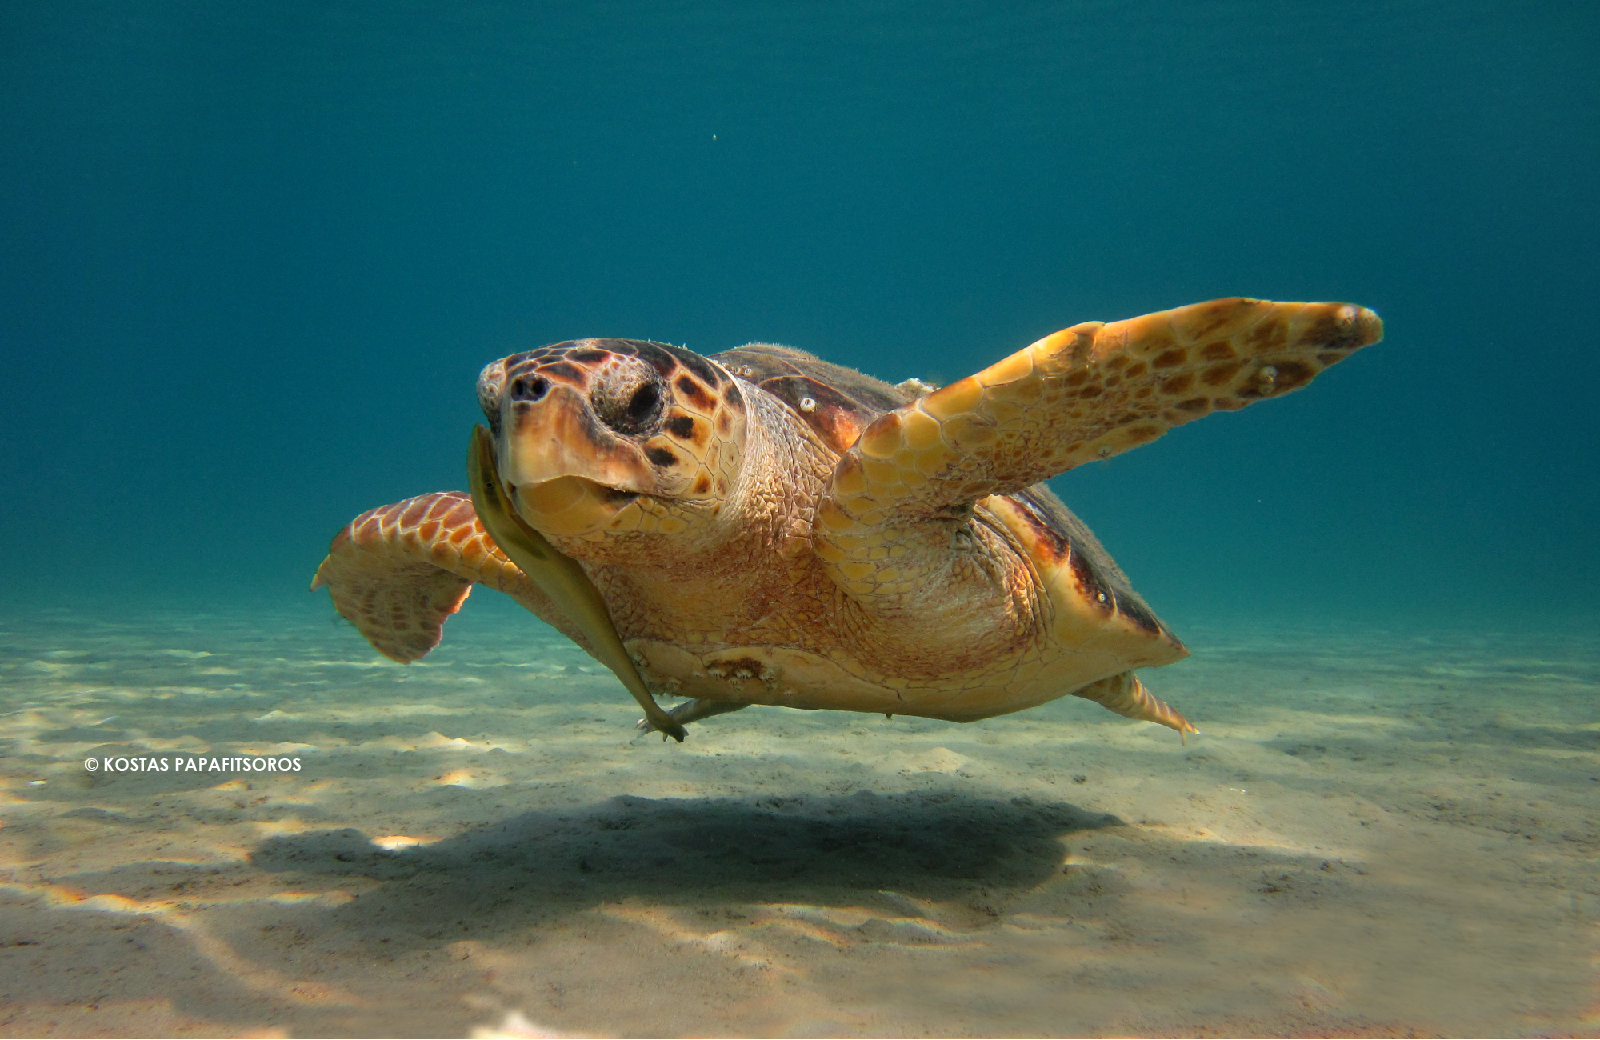 Download Images Of Turtles Background